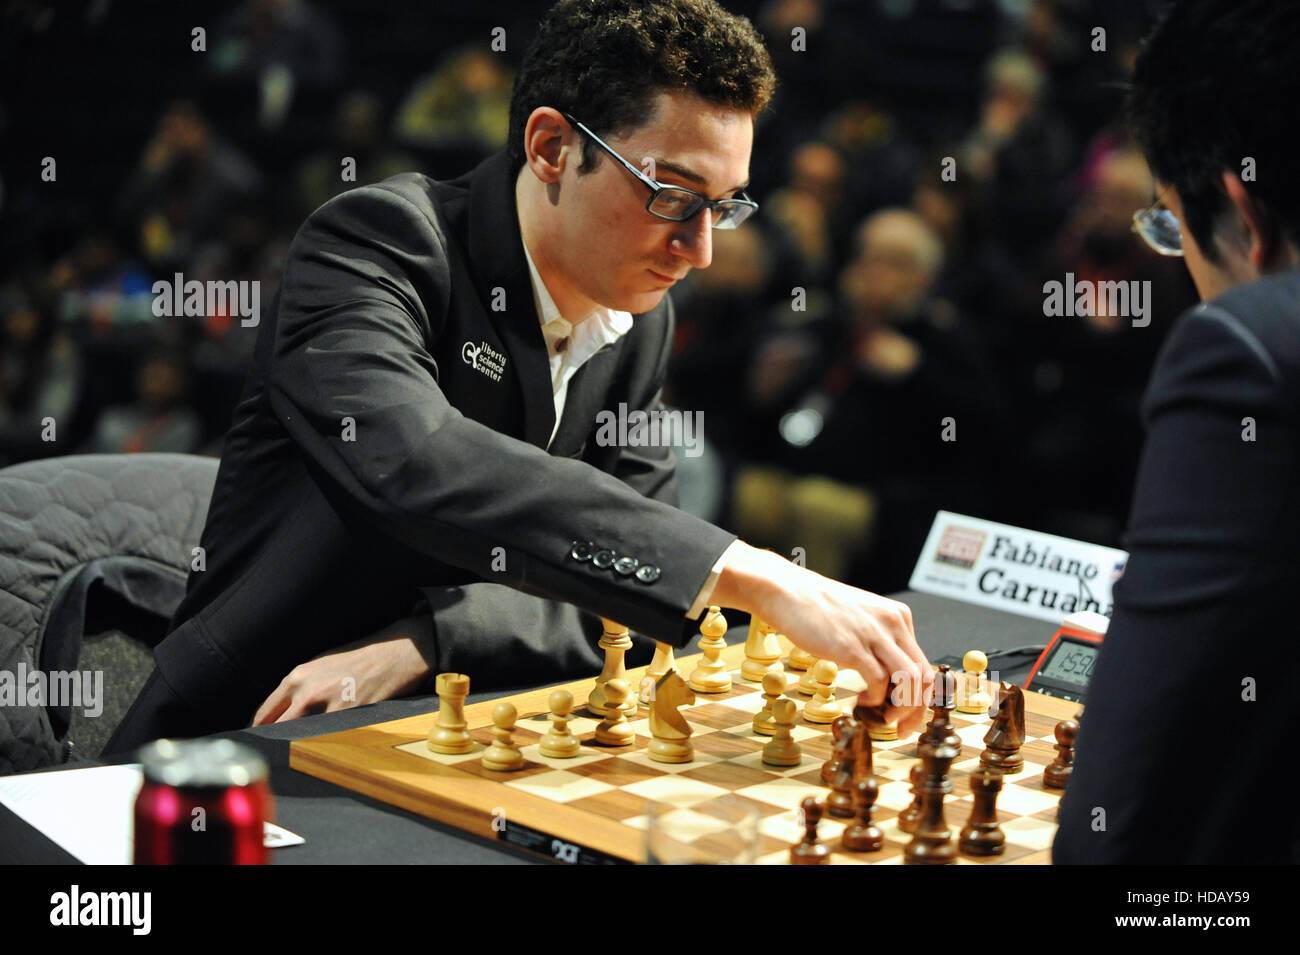 London, UK. 11th Dec, 2016. Fabiano Caruana (USA) taking a piece from Vladimir Kramnik (RUS) during the opening - Stock Image